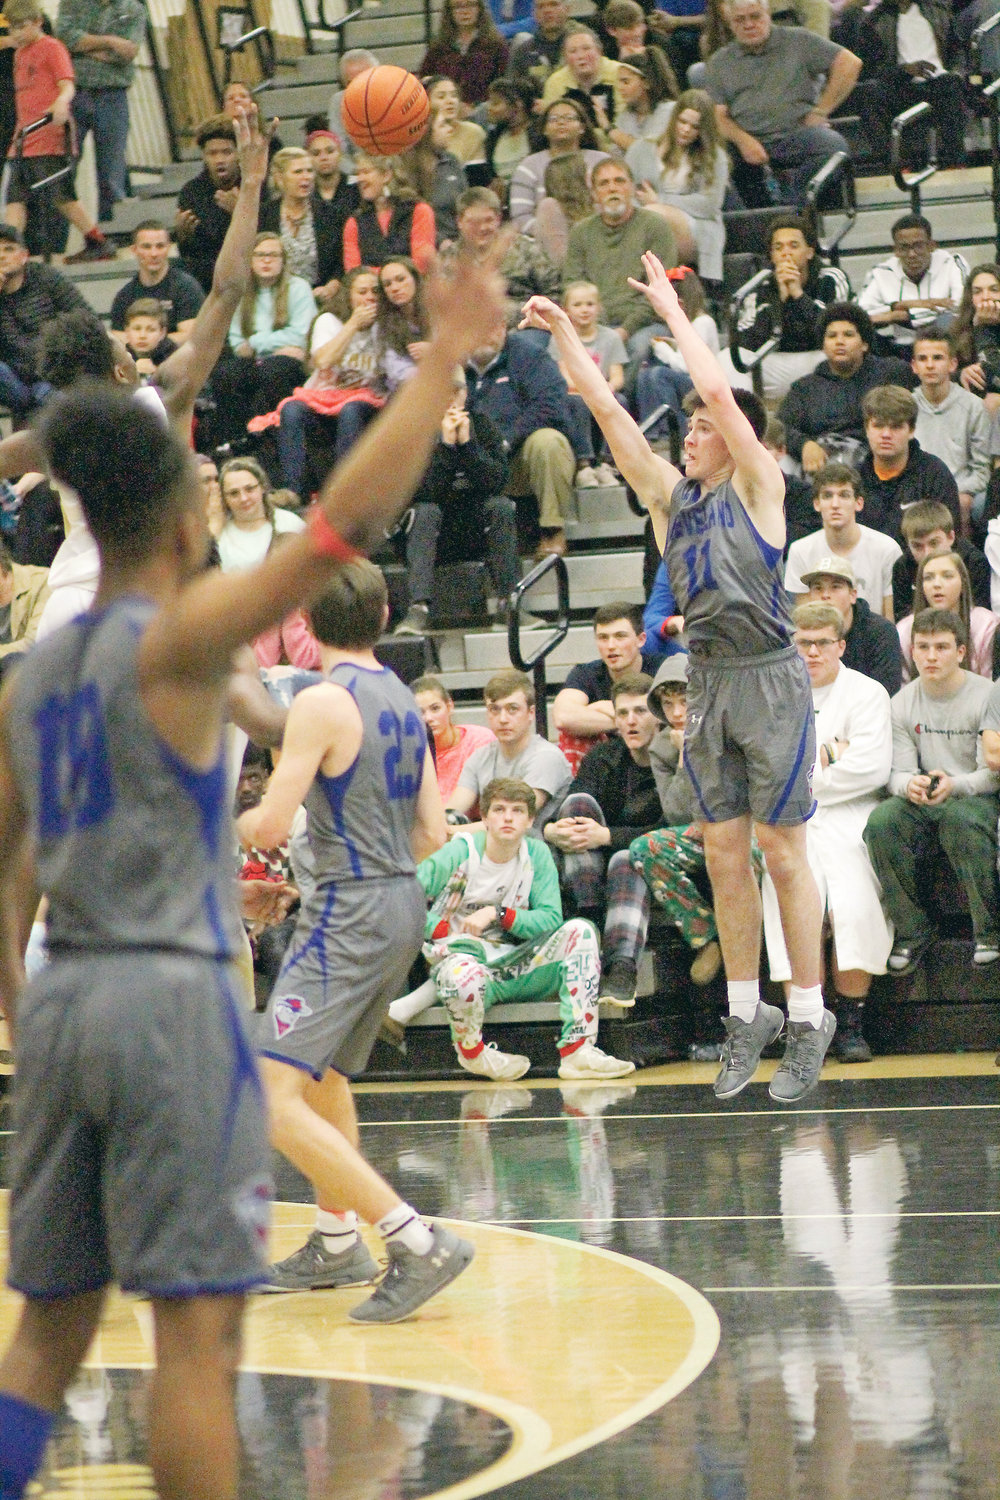 CLEVELAND HIGH sophomore Grant Hurst (11) fires one of his half dozen 3-pointers in Monday evening's 71-60 Blue Raider victory over Bradley Central at Jim Smiddy Arena.